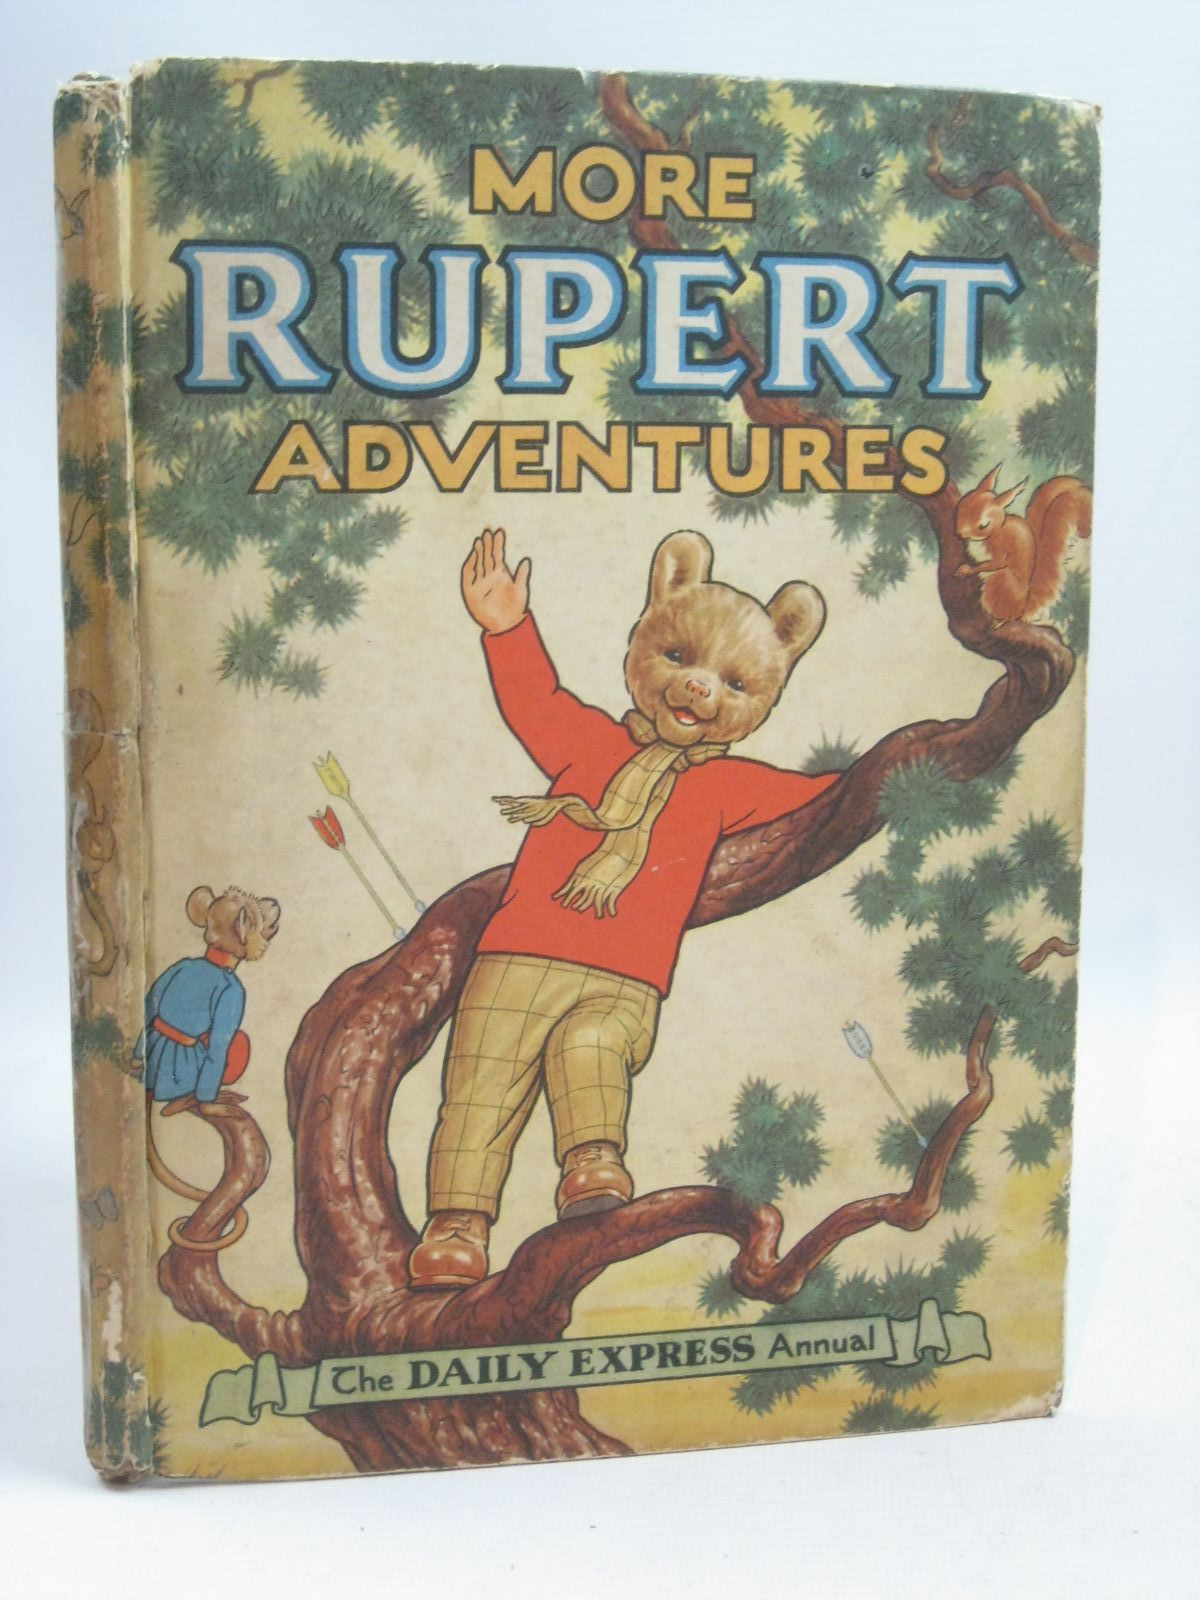 Photo of RUPERT ANNUAL 1952 - MORE RUPERT ADVENTURES written by Bestall, Alfred illustrated by Bestall, Alfred published by Daily Express (STOCK CODE: 1405409)  for sale by Stella & Rose's Books